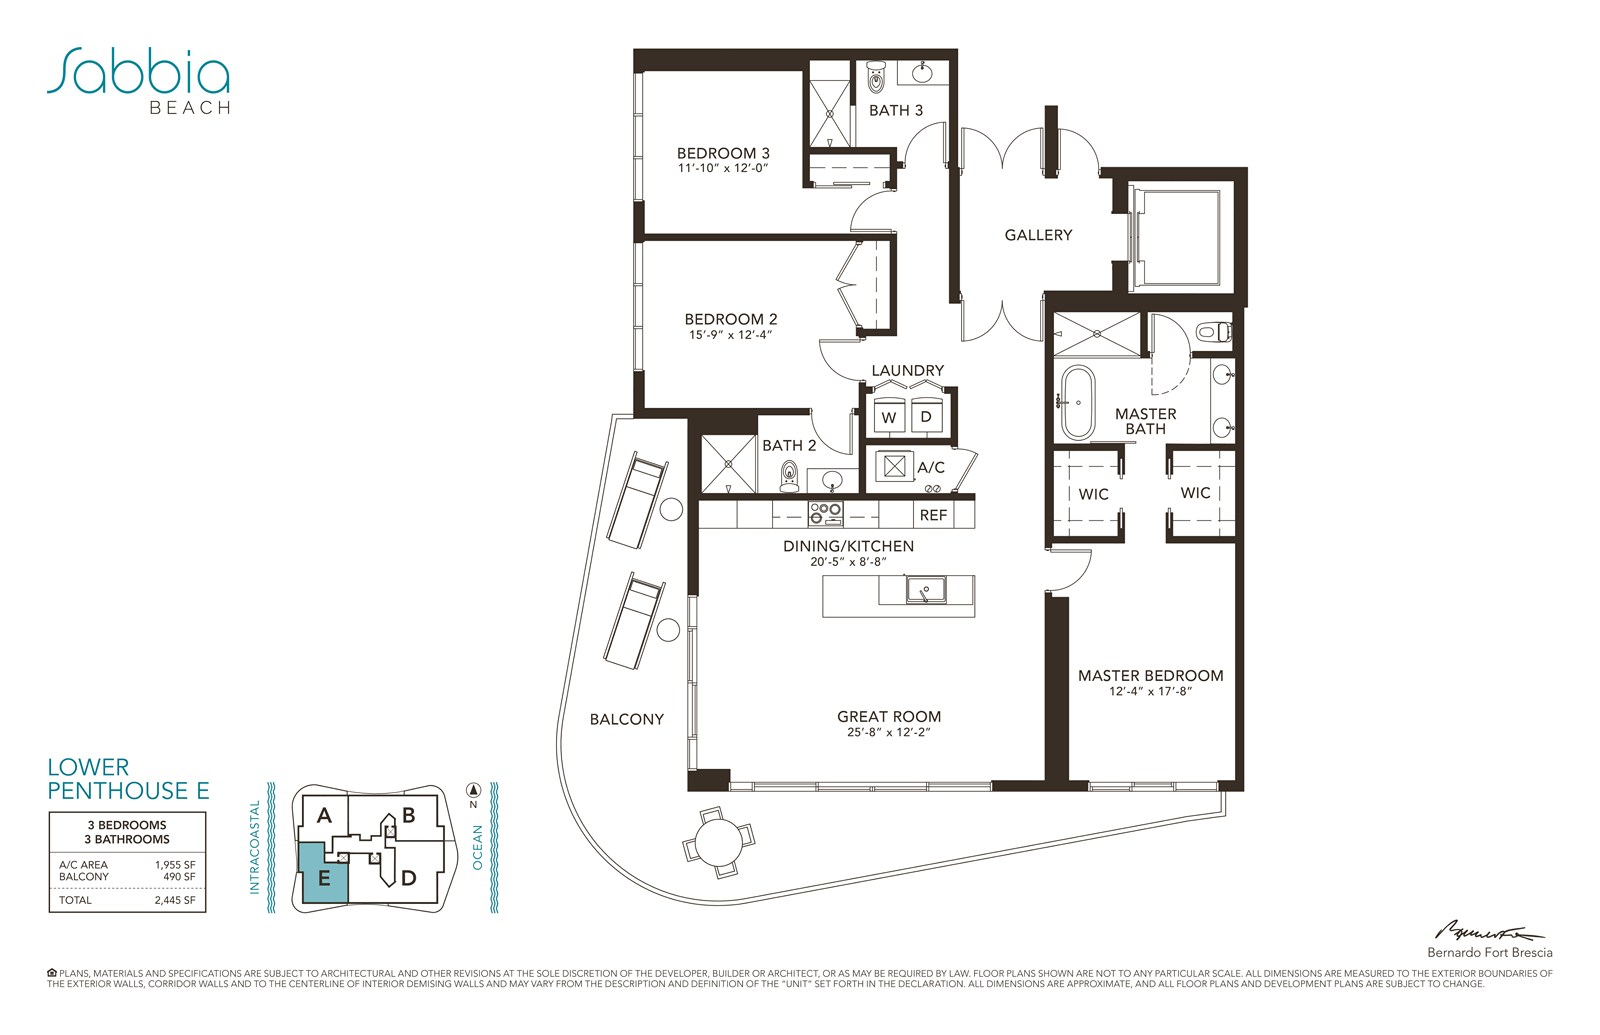 SABBIA Beach Condos - Floorplan 5